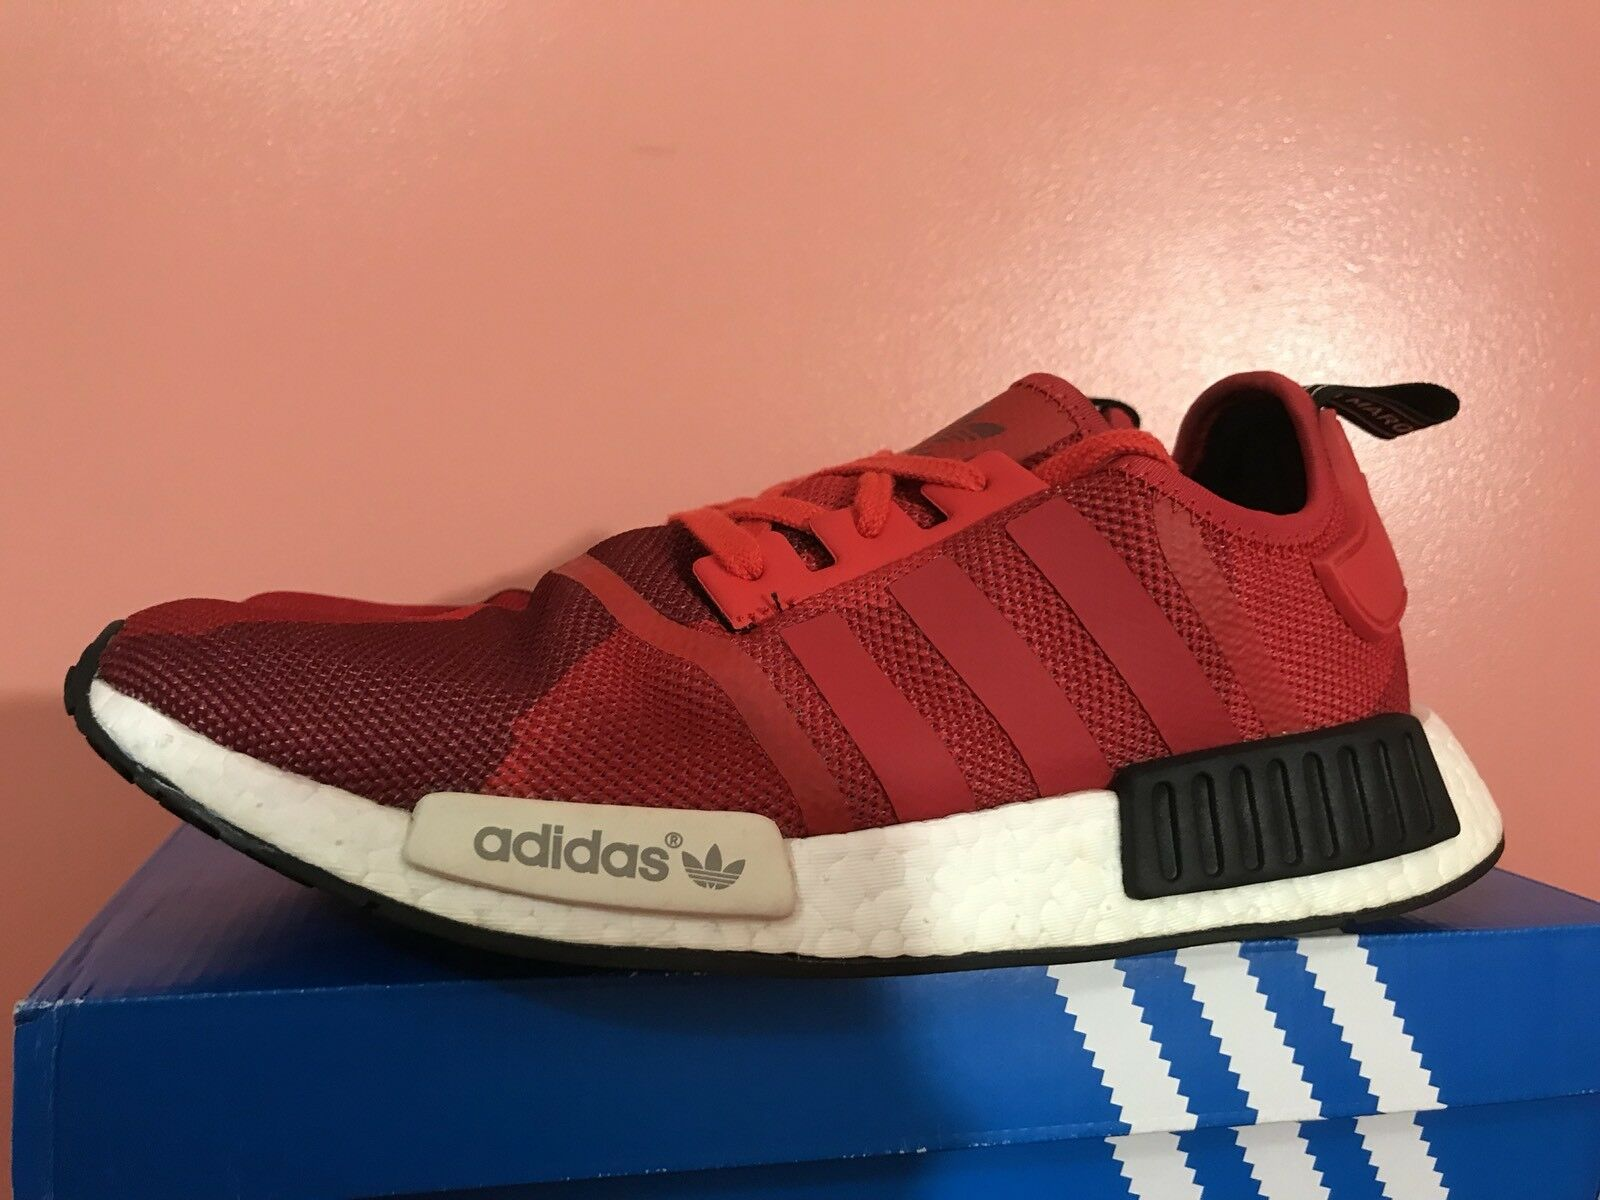 Adidas MEN'S NMD_R1 Nomad Runner Red Geometric Camo S79164 S79164 S79164 Size 11.5 9fc0f7